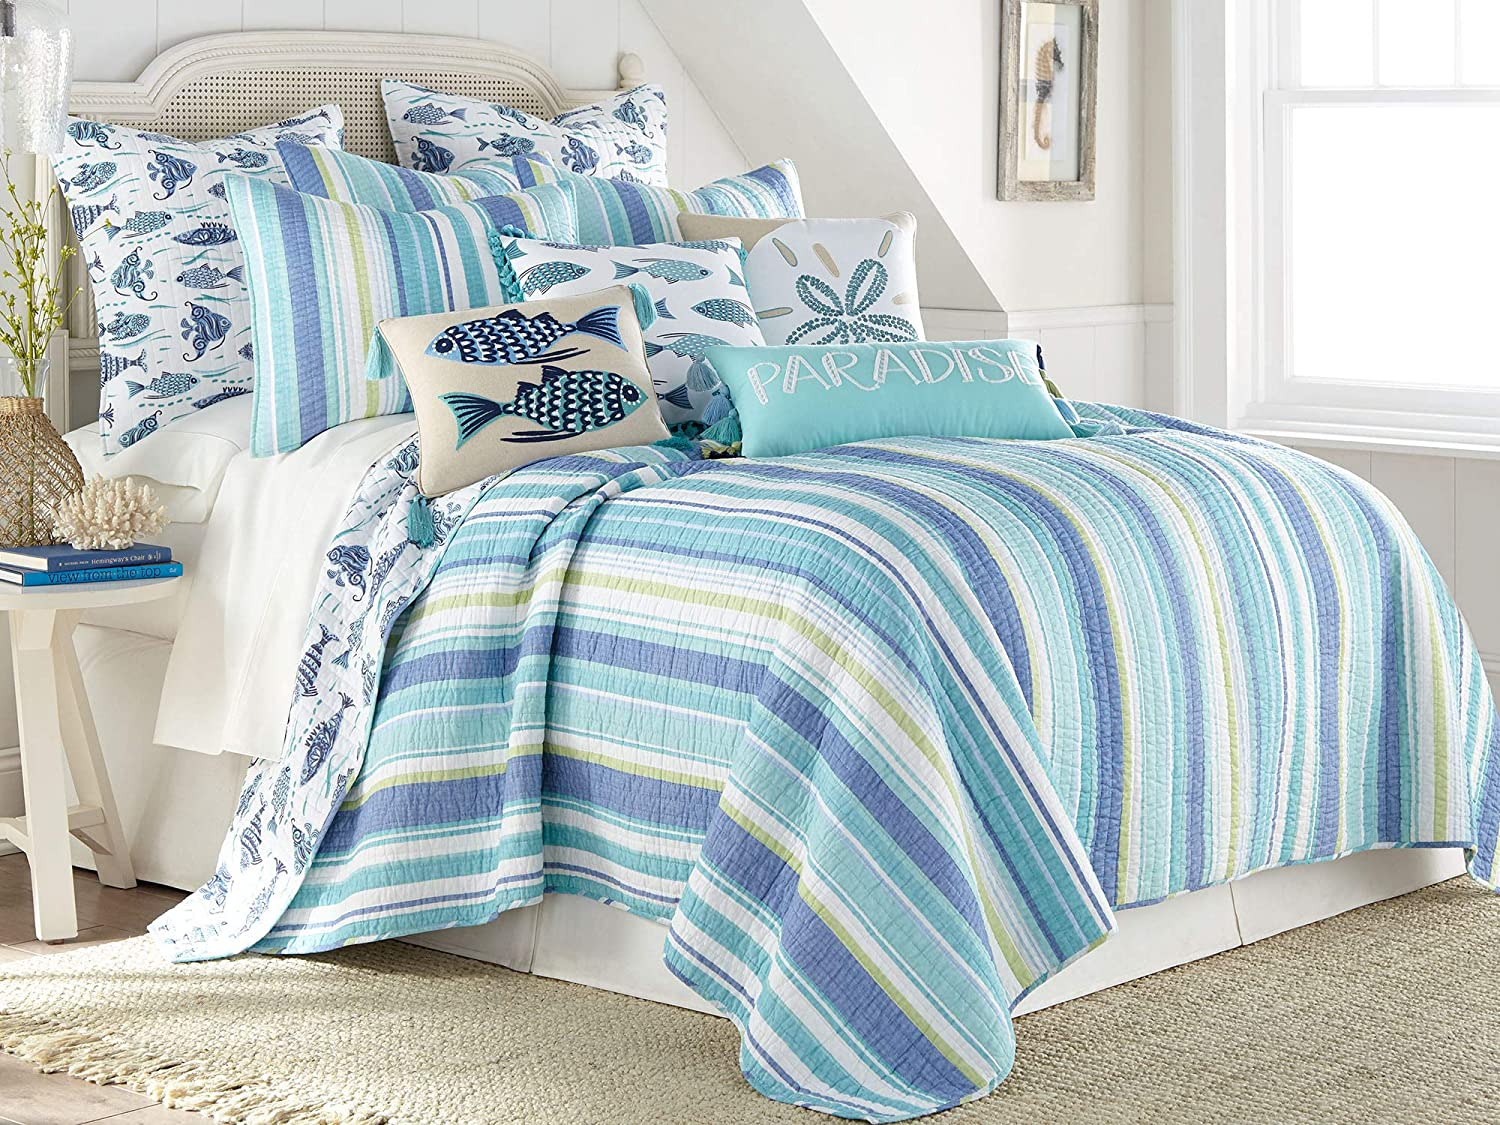 Levtex home - Laida Beach Quilt Set - Full/Queen Quilt + Two Standard Pillow Shams - Coastal Stripe - Green, Blue, White - Quilt Size (88x92in.) and Pillow Sham Size (26x20in.) - Reversible - Cotton